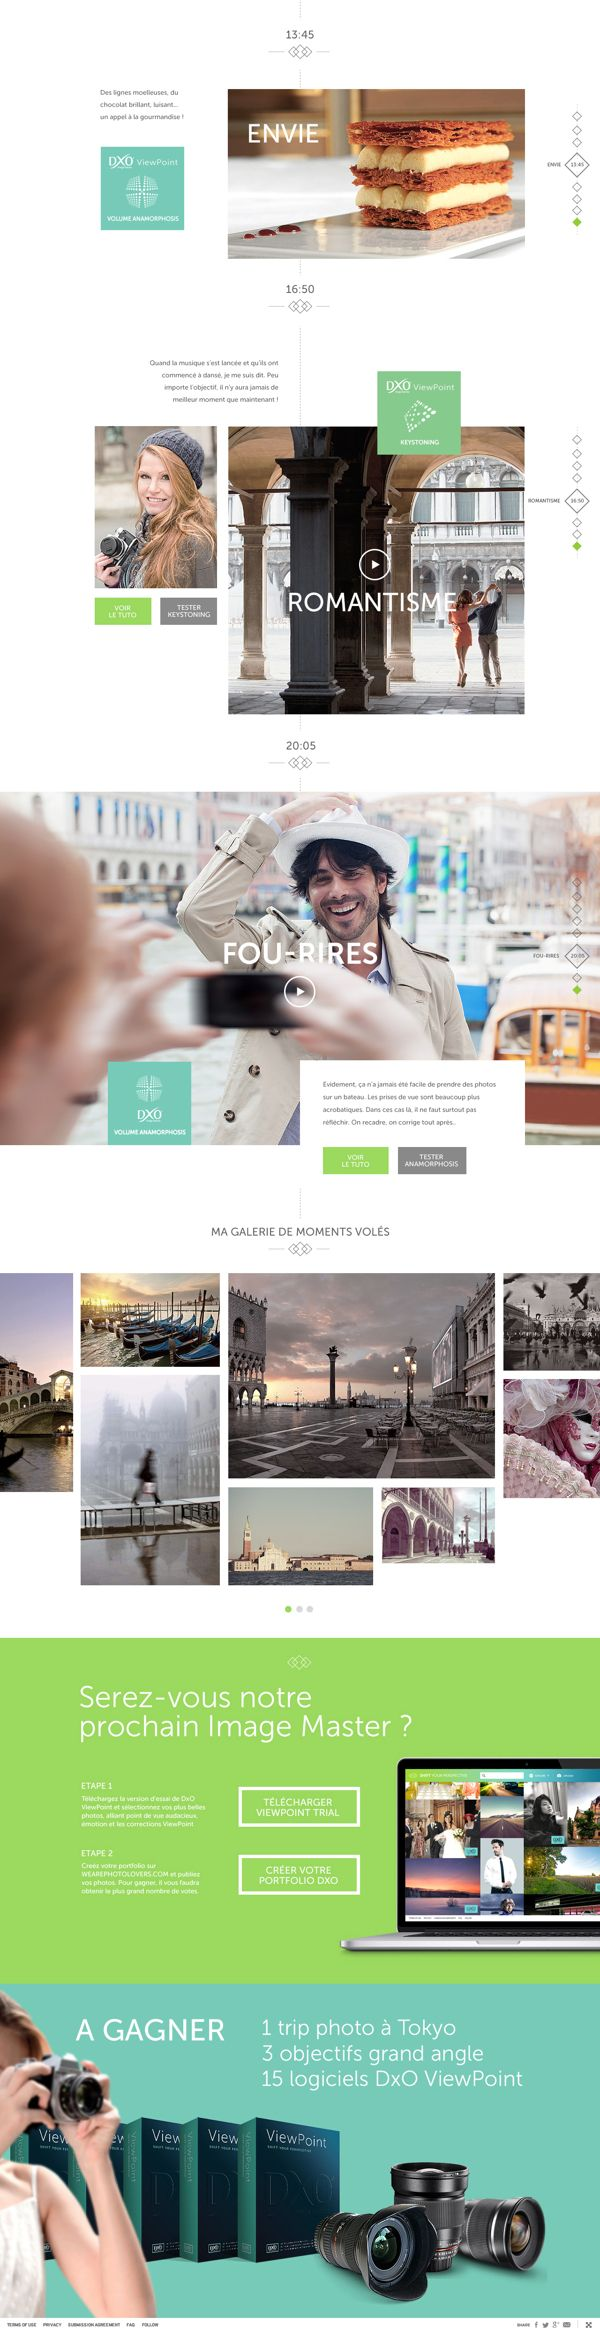 Beautiful photos and videos mixed with an amazing #webdesign, good job! DxO Labs by yul , via Behance